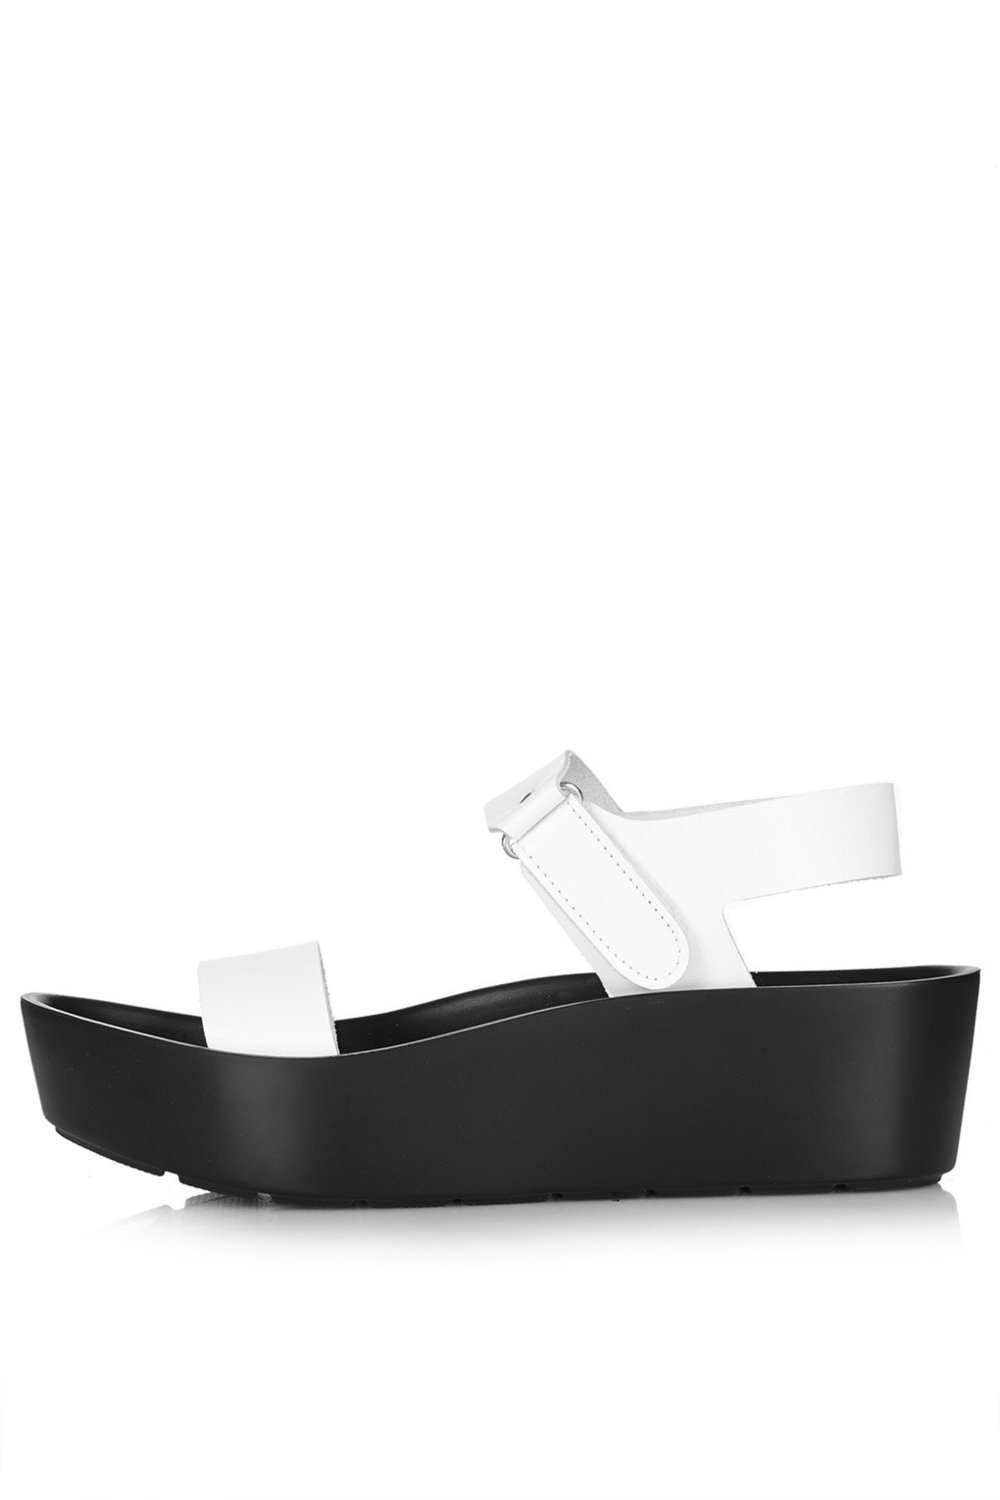 FERN Sunken Wedge Sandals. Topshop USA. $65.